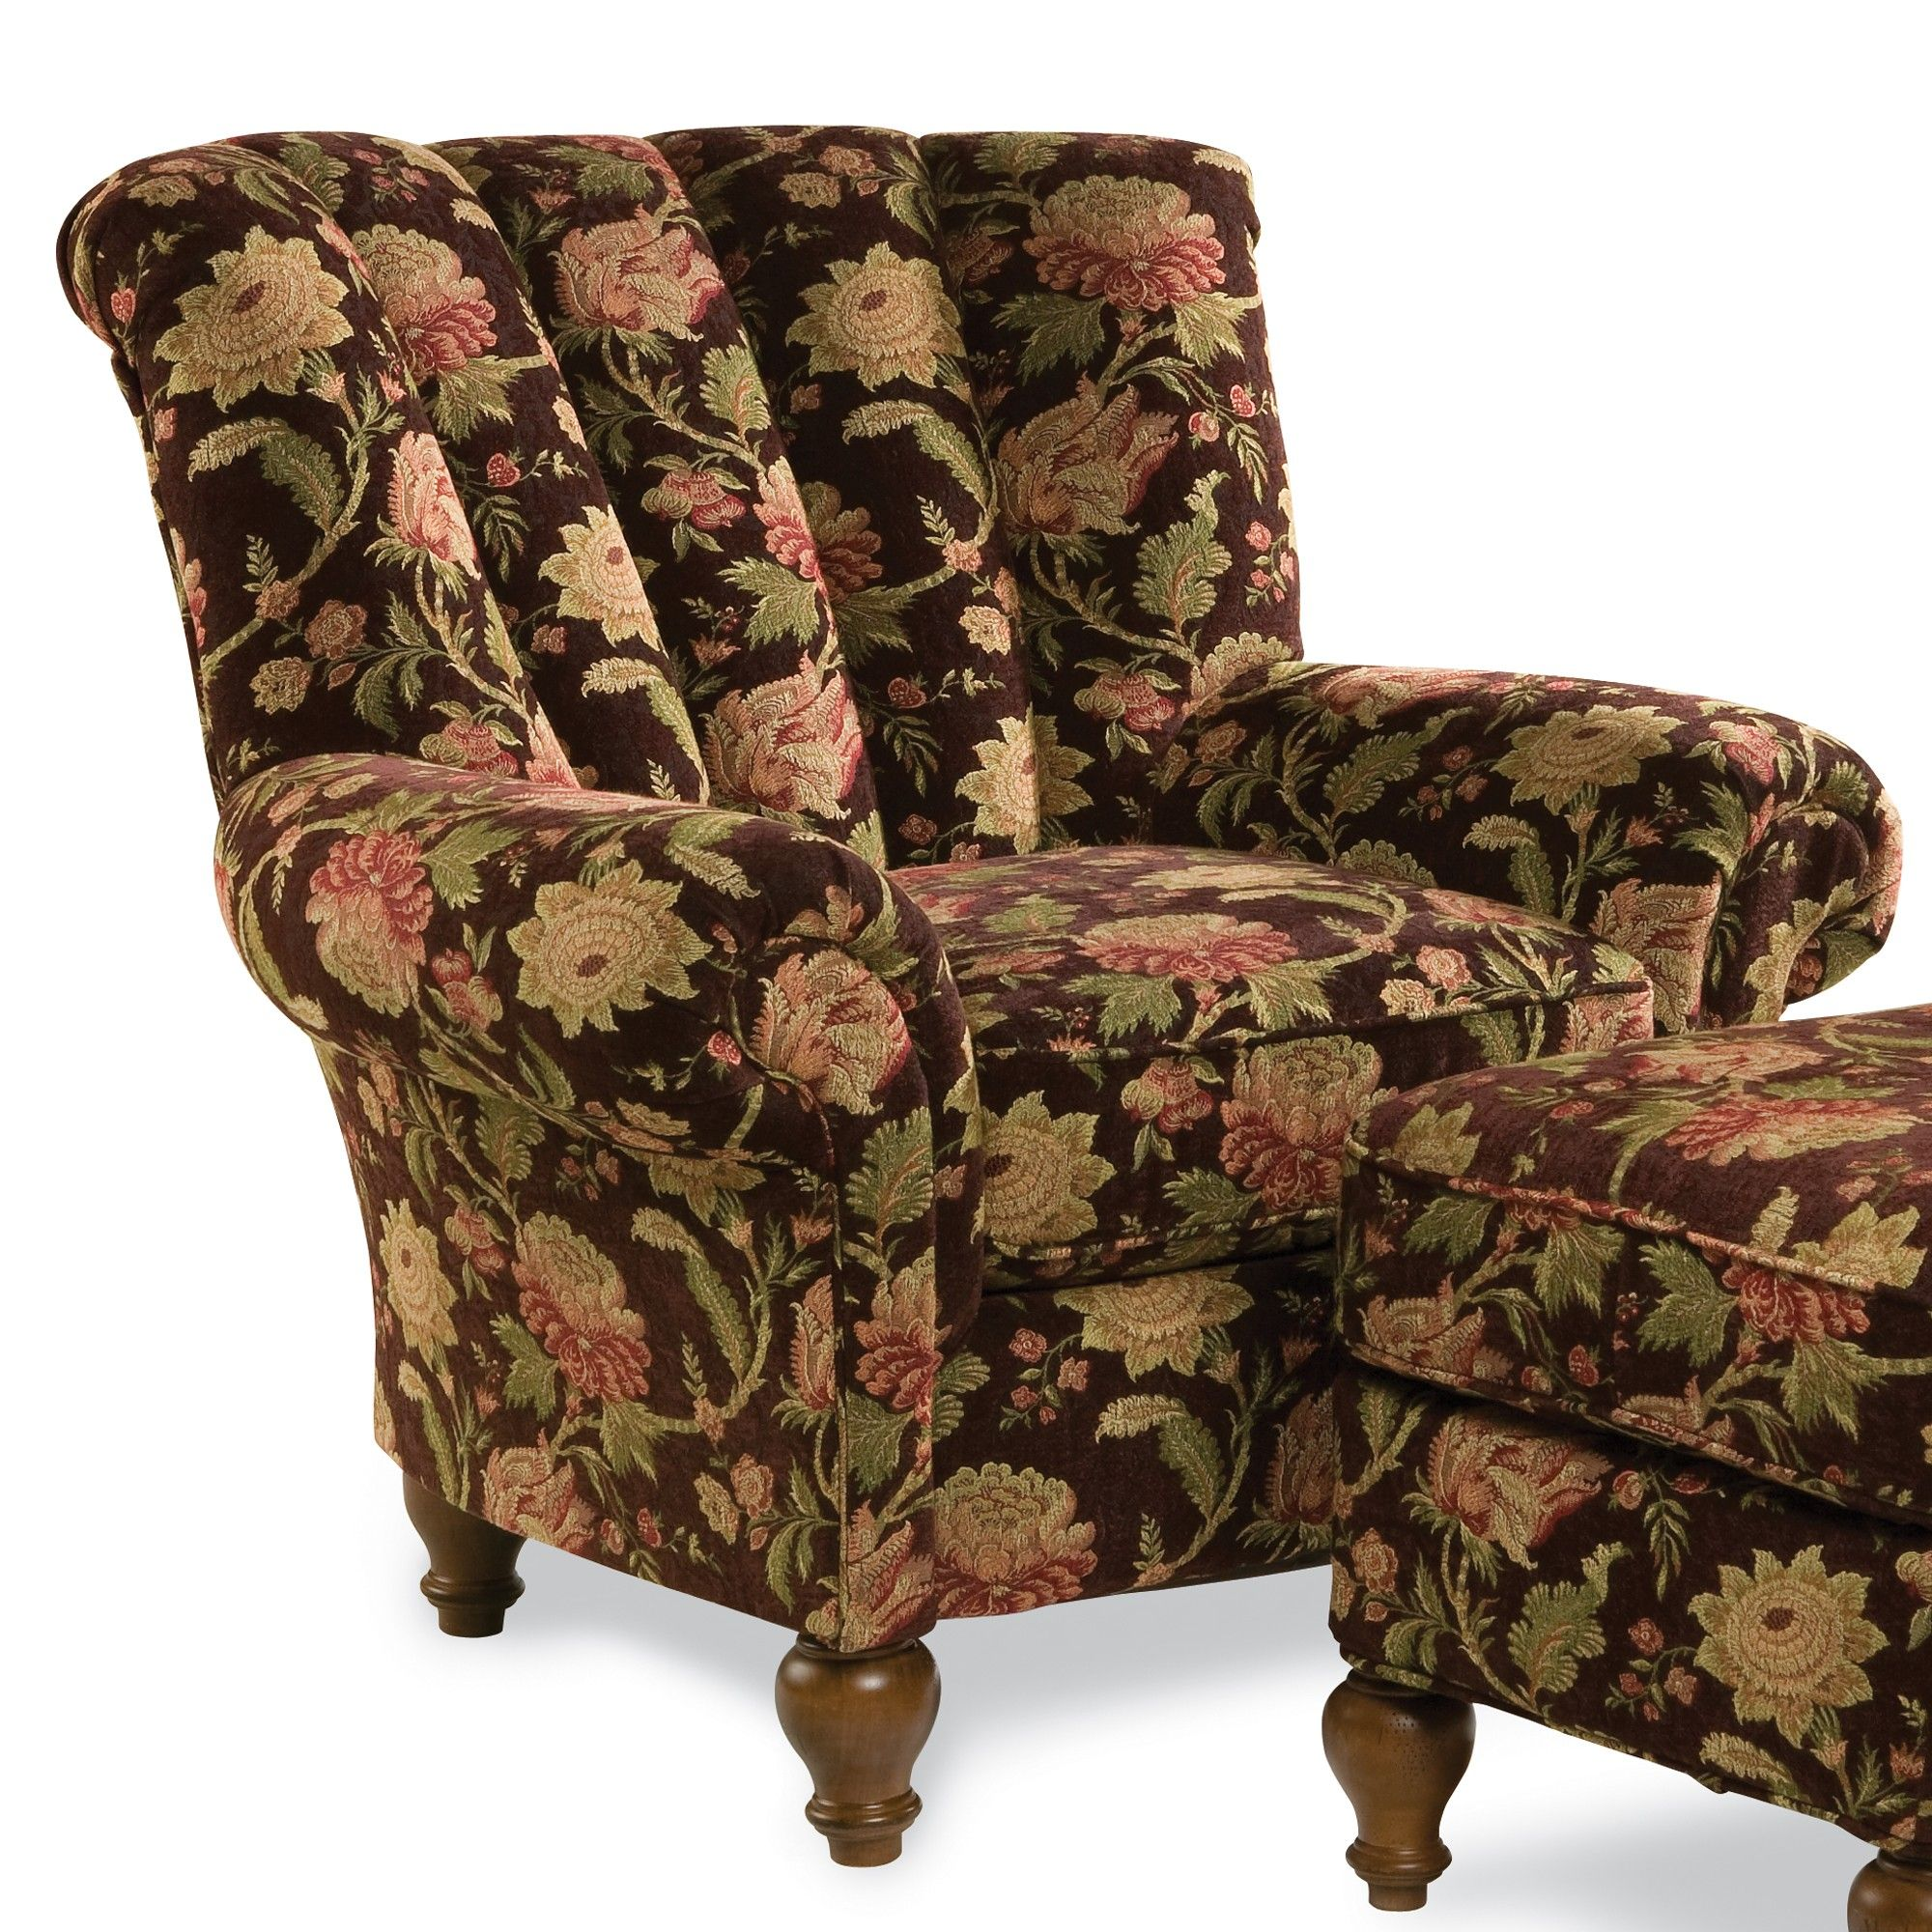 Stafford Chair Ottoman Sturbridge Yankee Workshop Chair And Ottoman Patterned Chair Furniture Upholstery #pattern #chairs #for #living #room